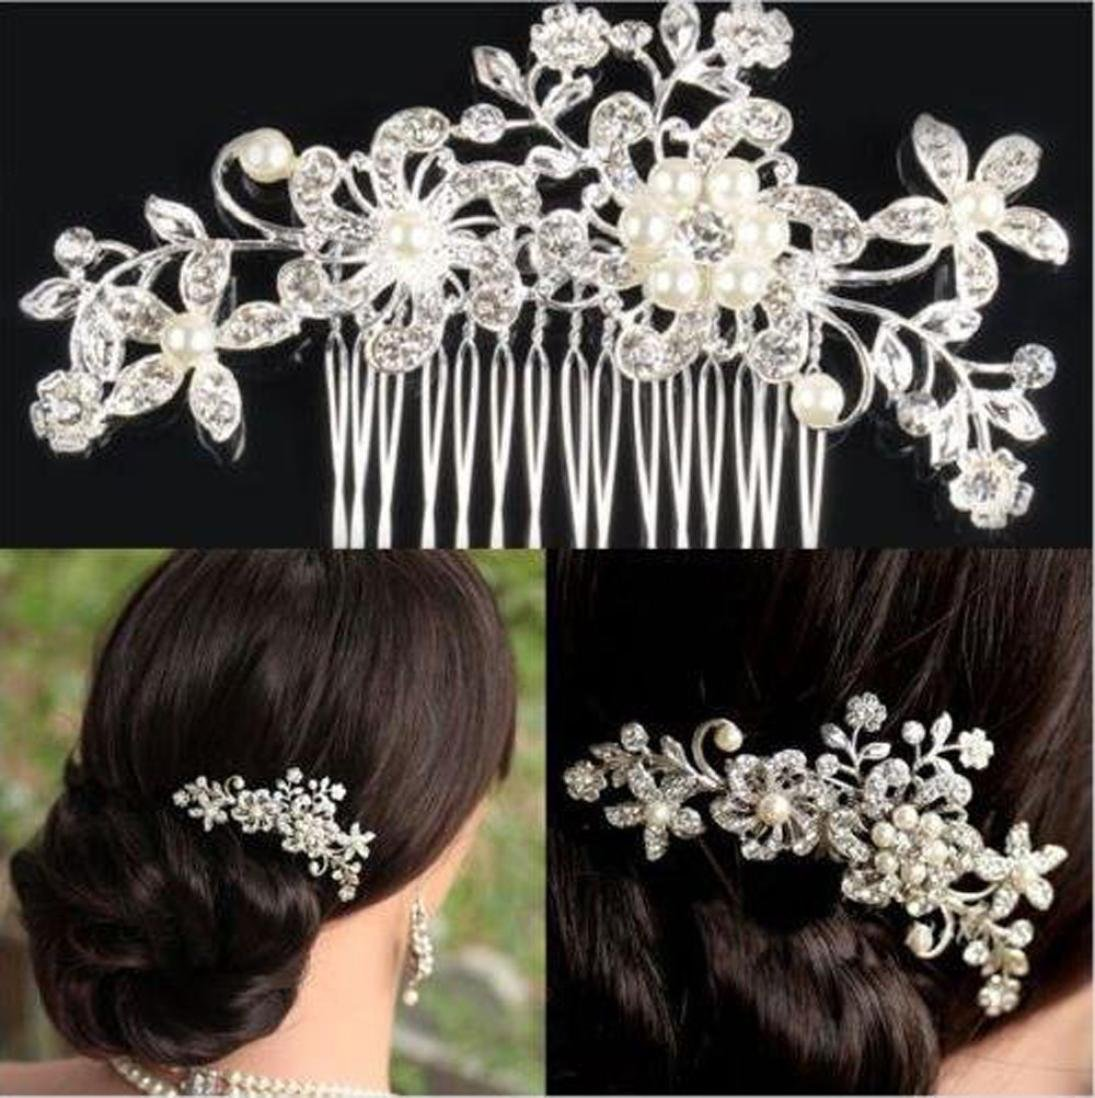 Oyedens Women Bridal Flower Diamante Crystal Rhinestones Pearls Hair Clip Comb Wedding Headdress